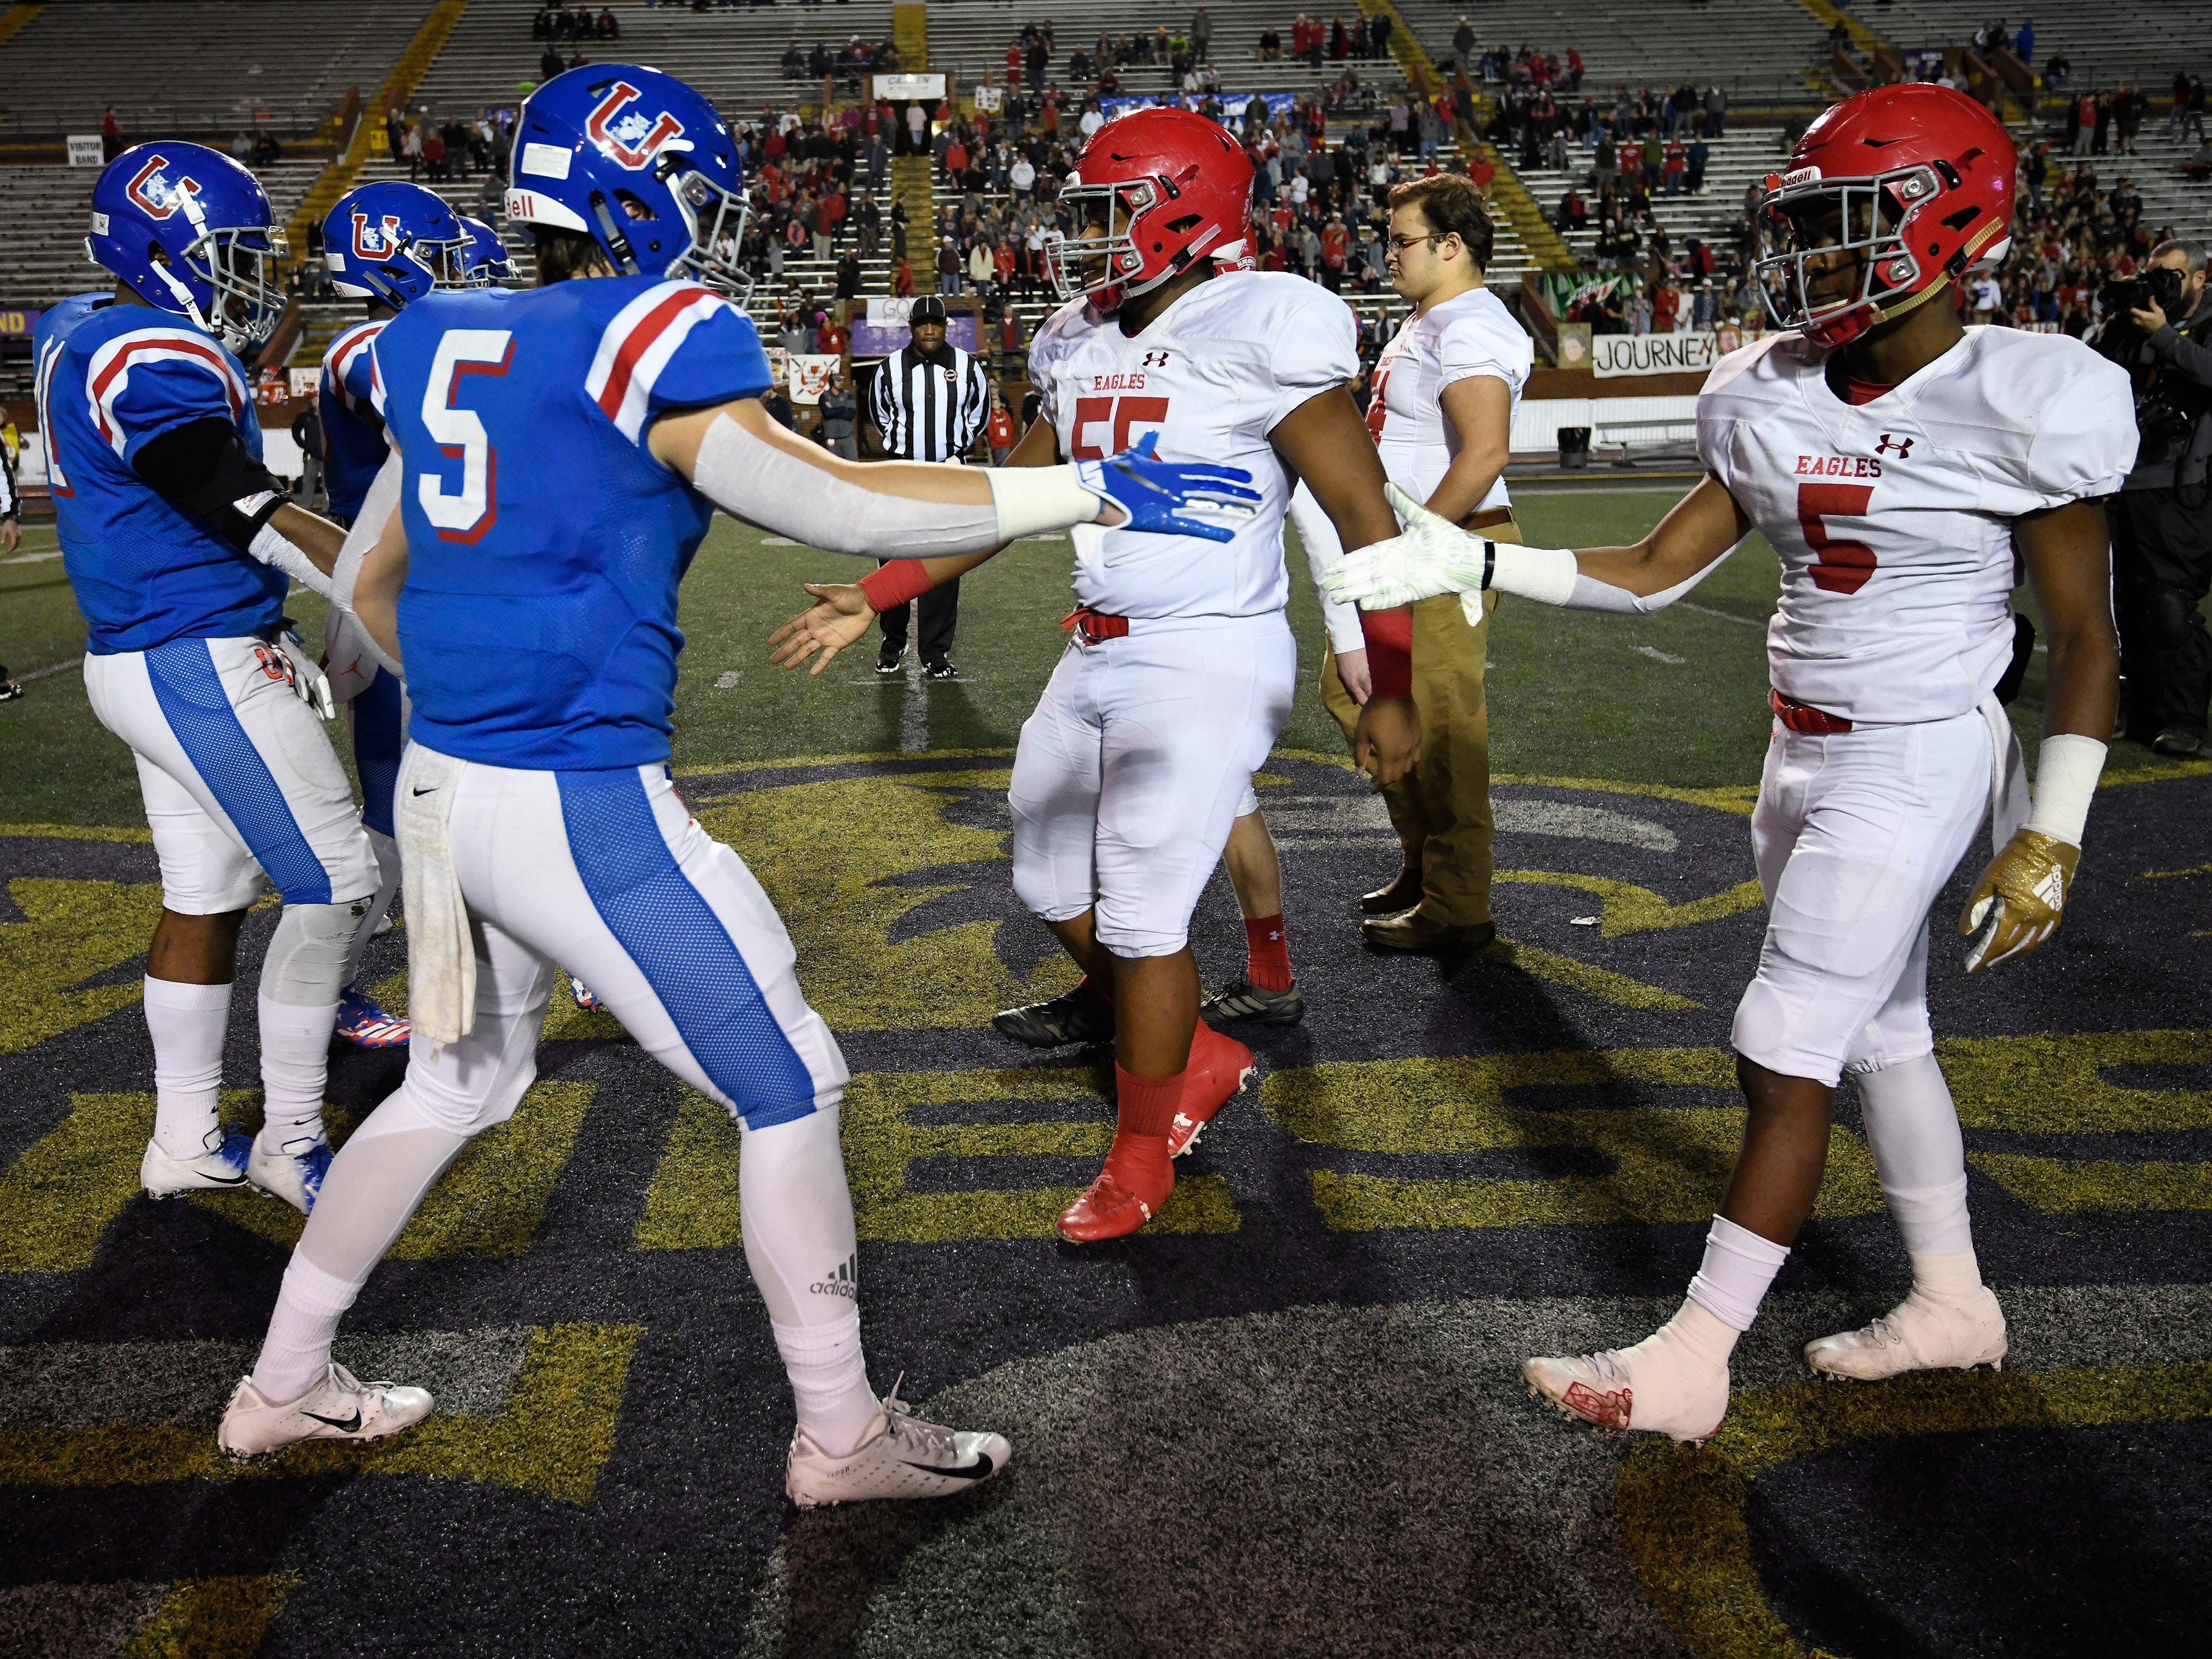 BA and MUS captains shake hands before the start of the Division II-AAA BlueCross Bowl state championship at Tennessee Tech's Tucker Stadium in Cookeville, Tenn., on Friday, Nov. 30, 2018.